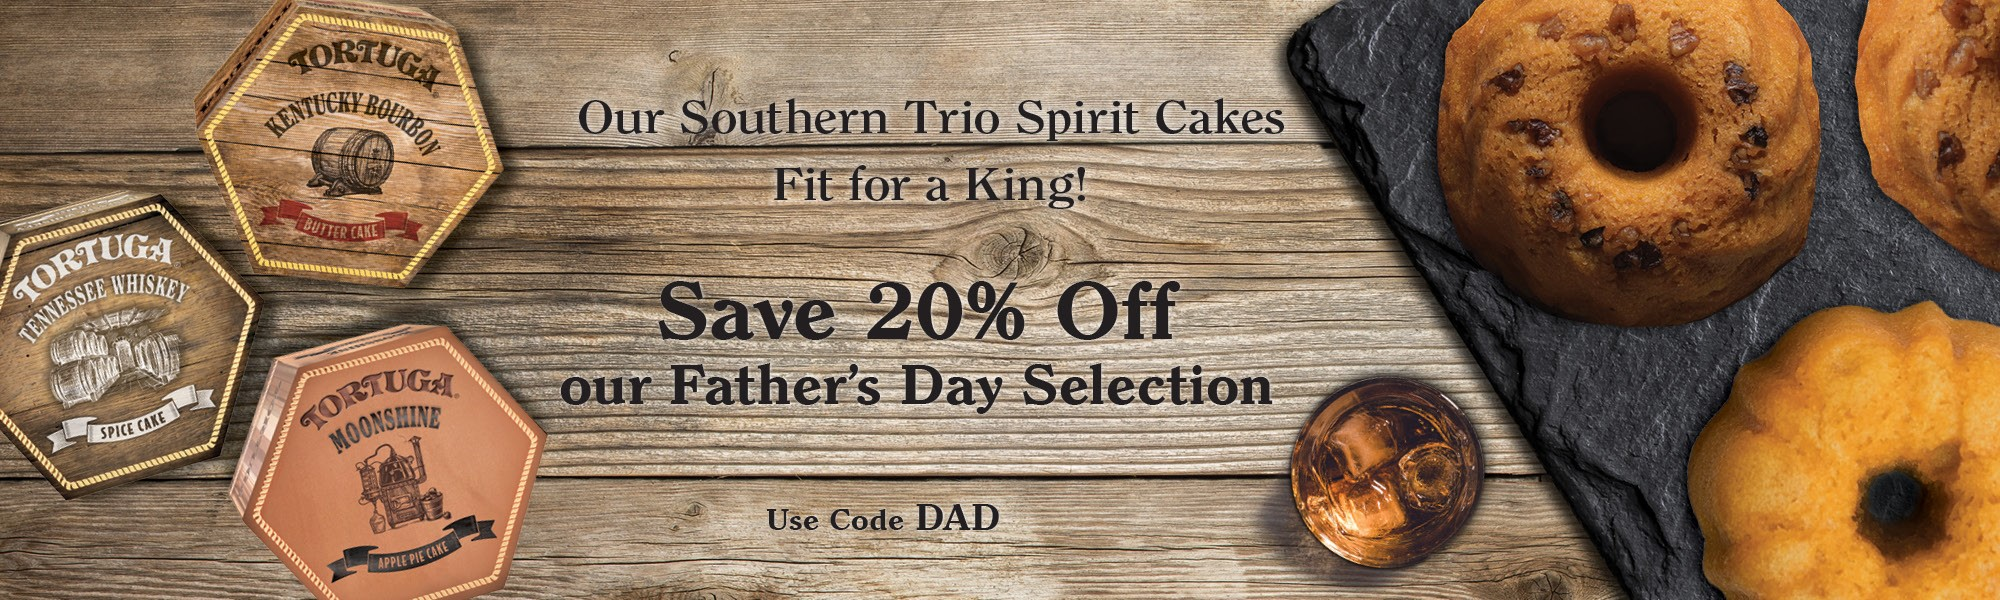 category-page-fathers-day.jpg